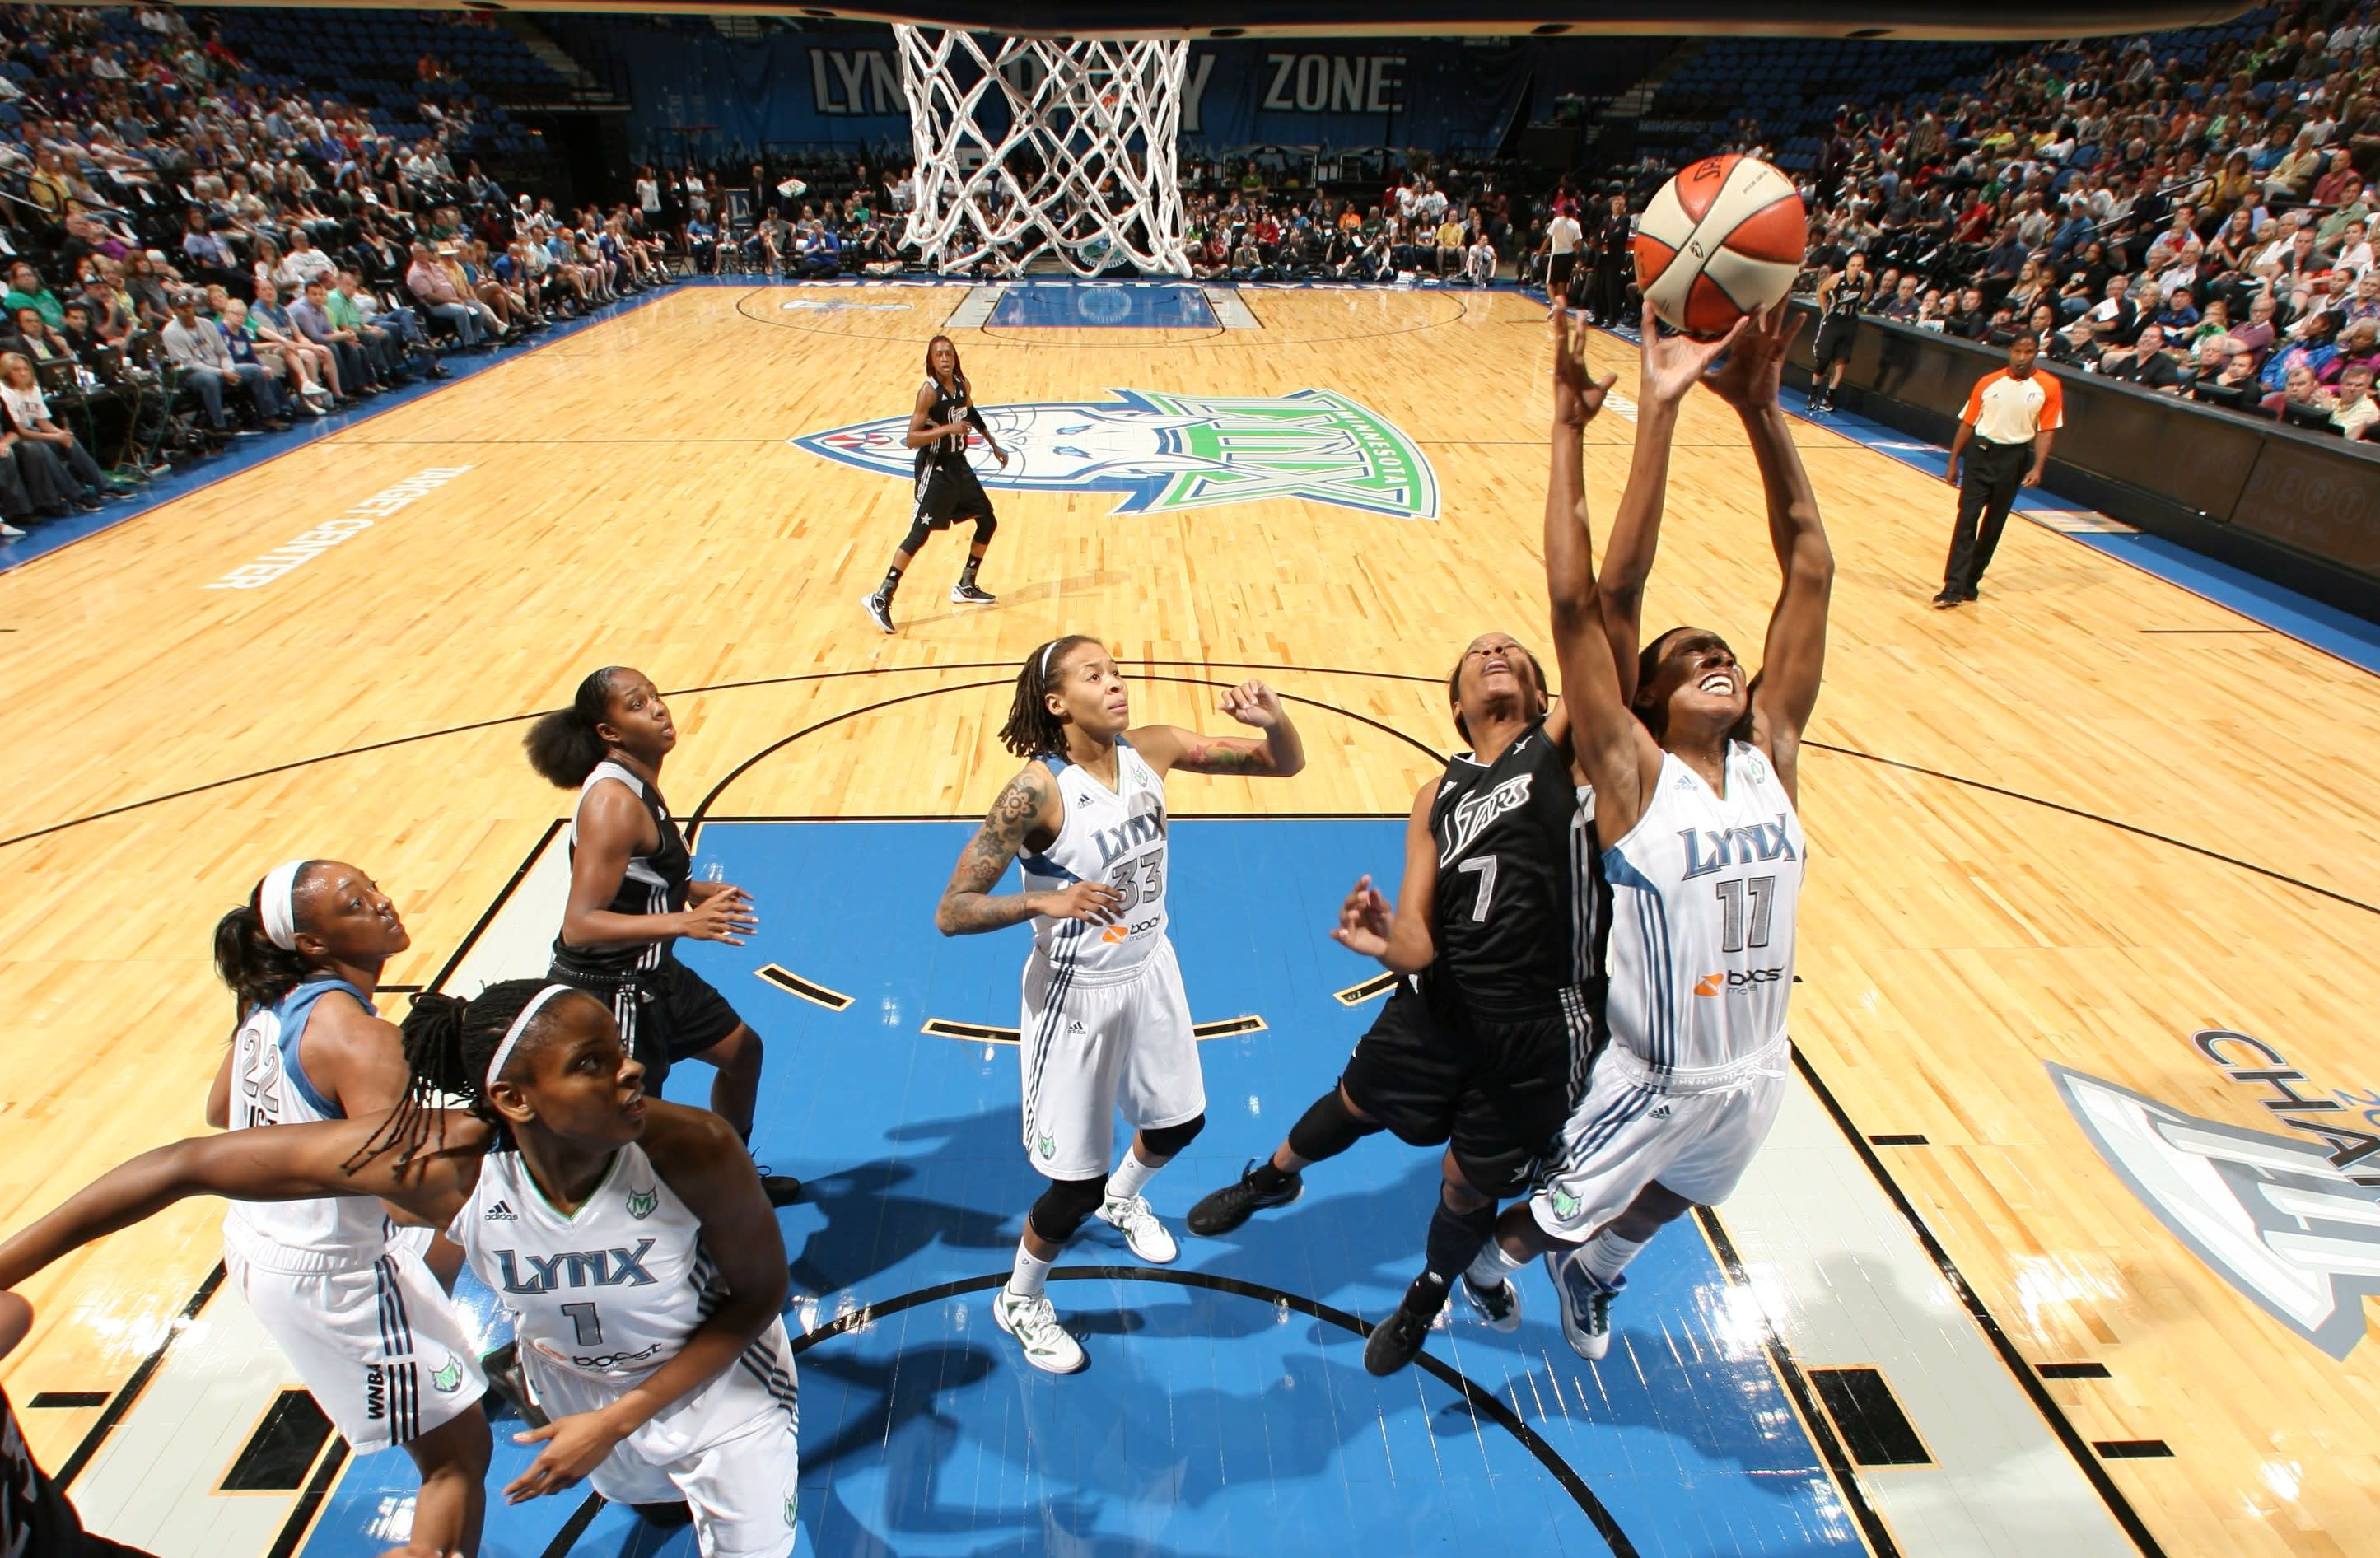 MINNEAPOLIS, MN - JUNE 03:  Candice Wiggins #11 of the Minnesota Lynx jumps for the rebound against Jia Perkins #7 of the San Antonio Silver Stars in the game on June 3, 2012 at Target Center in Minneapolis, Minnesota.  NOTE TO USER: User expressly acknowledges and agrees that, by downloading and or using this Photograph, user is consenting to the terms and conditions of the Getty Images License Agreement. Mandatory Copyright Notice: Copyright 2012 NBAE (Photo by David Sherman/NBAE via Getty Images)